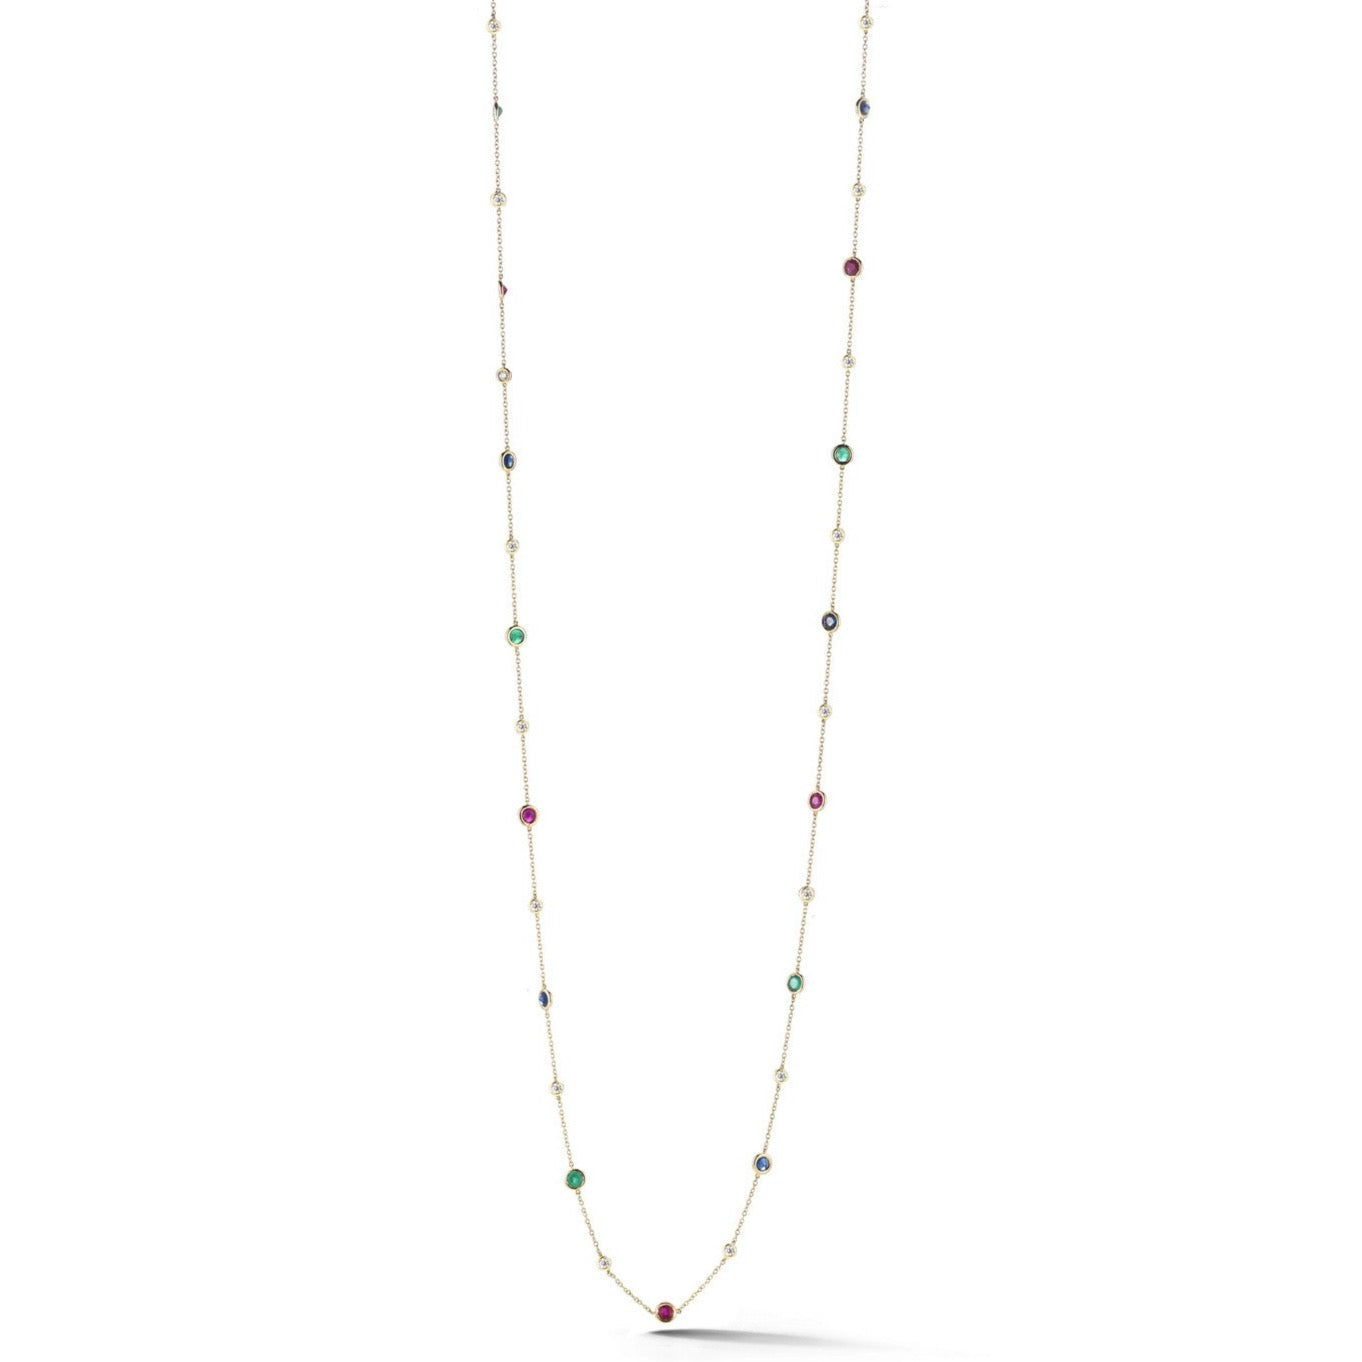 "AF Jewelers ""Station"" Necklace with Rubies, Emeralds, Blue Sapphires and Diamonds, 18k Yellow Gold. 34"" length."